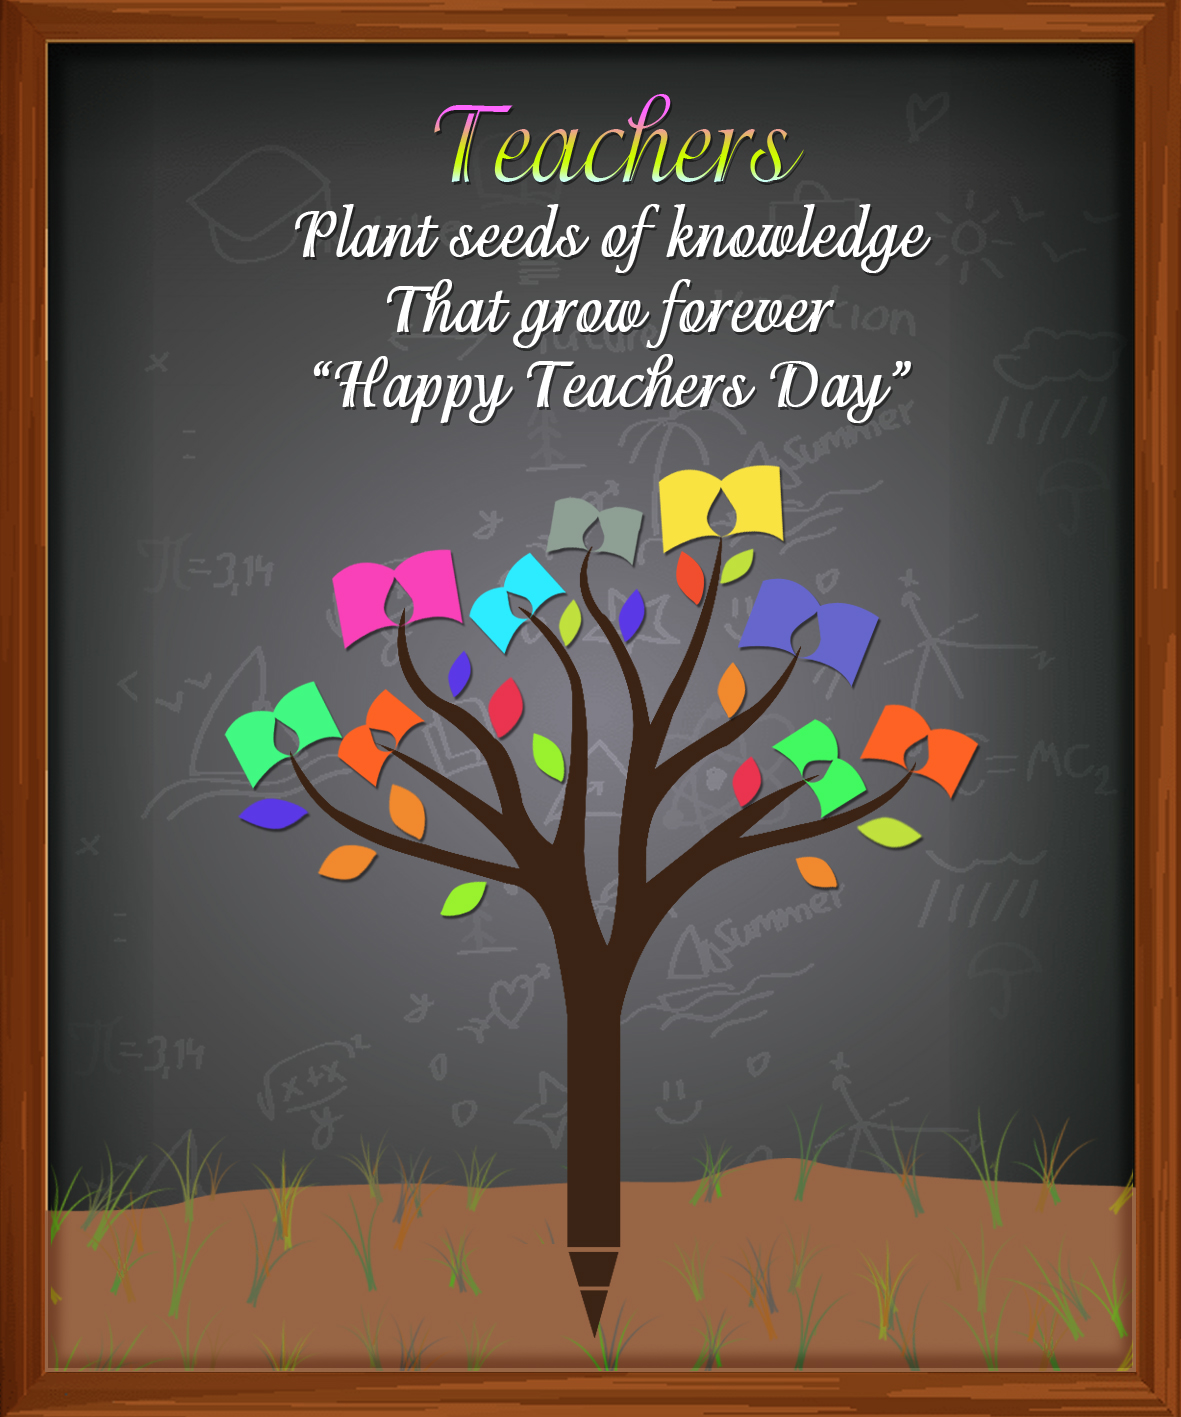 Announcing The Winners Of Teachers' Day E-Greetings